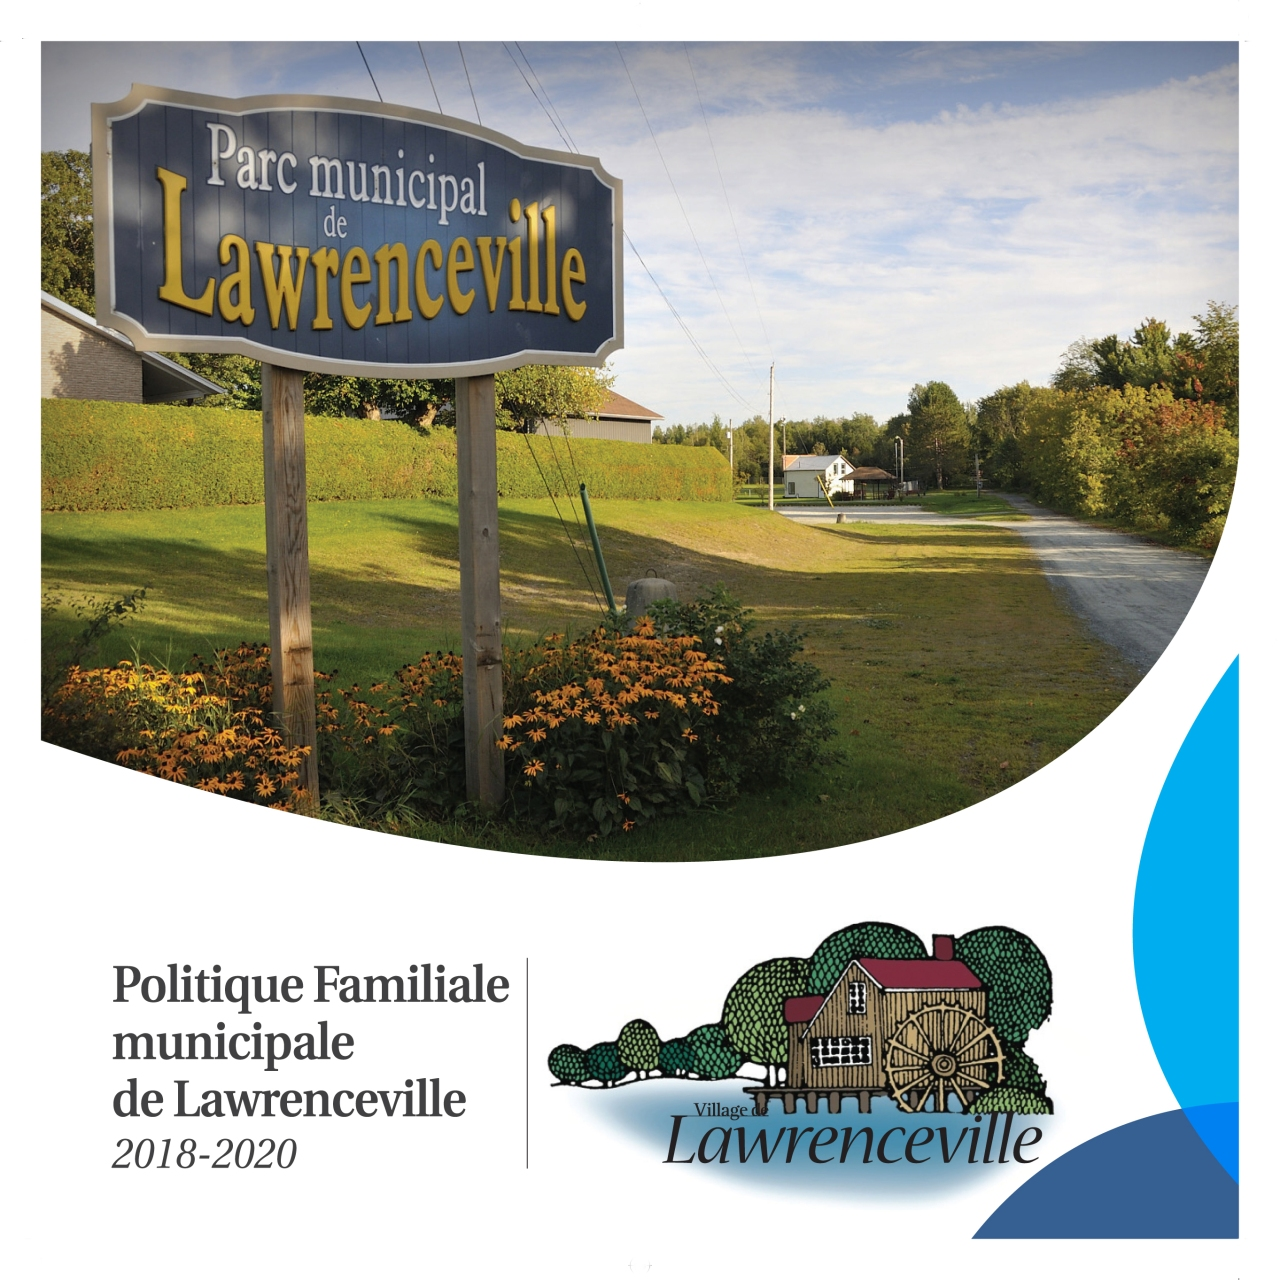 Politique Familiale municipale de Lawrenceville 2018-2020.  Lawrenceville Municipal Family Policy 2018-2020.